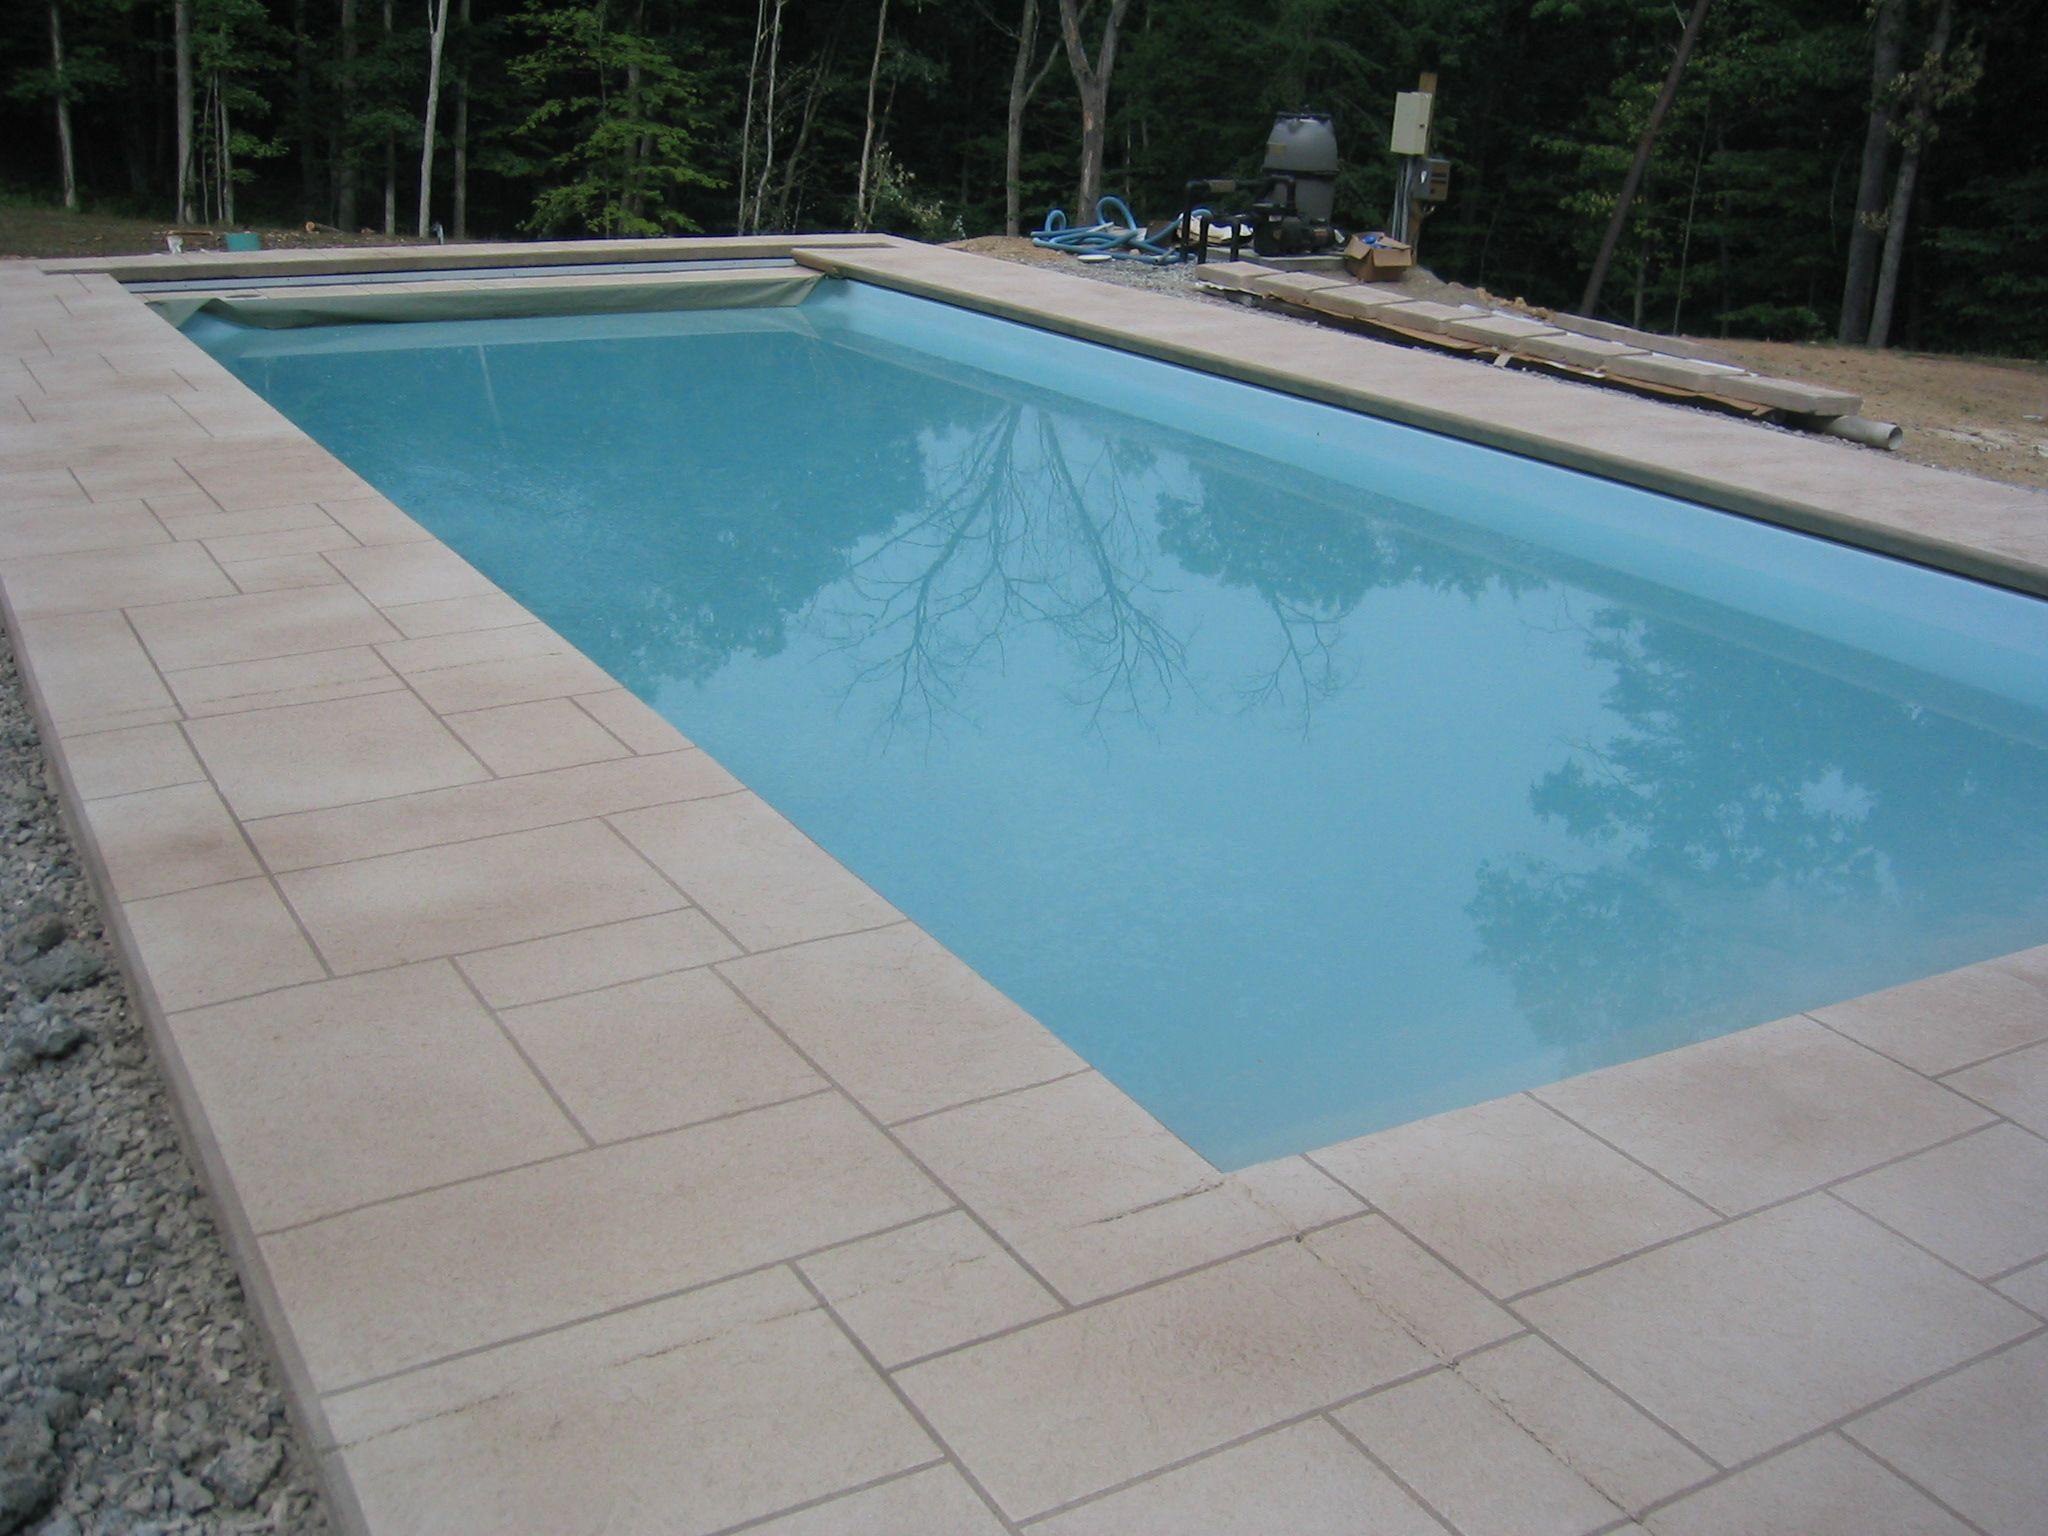 Stamped Concrete Is An Ideal Pool Deck Surface Combining The